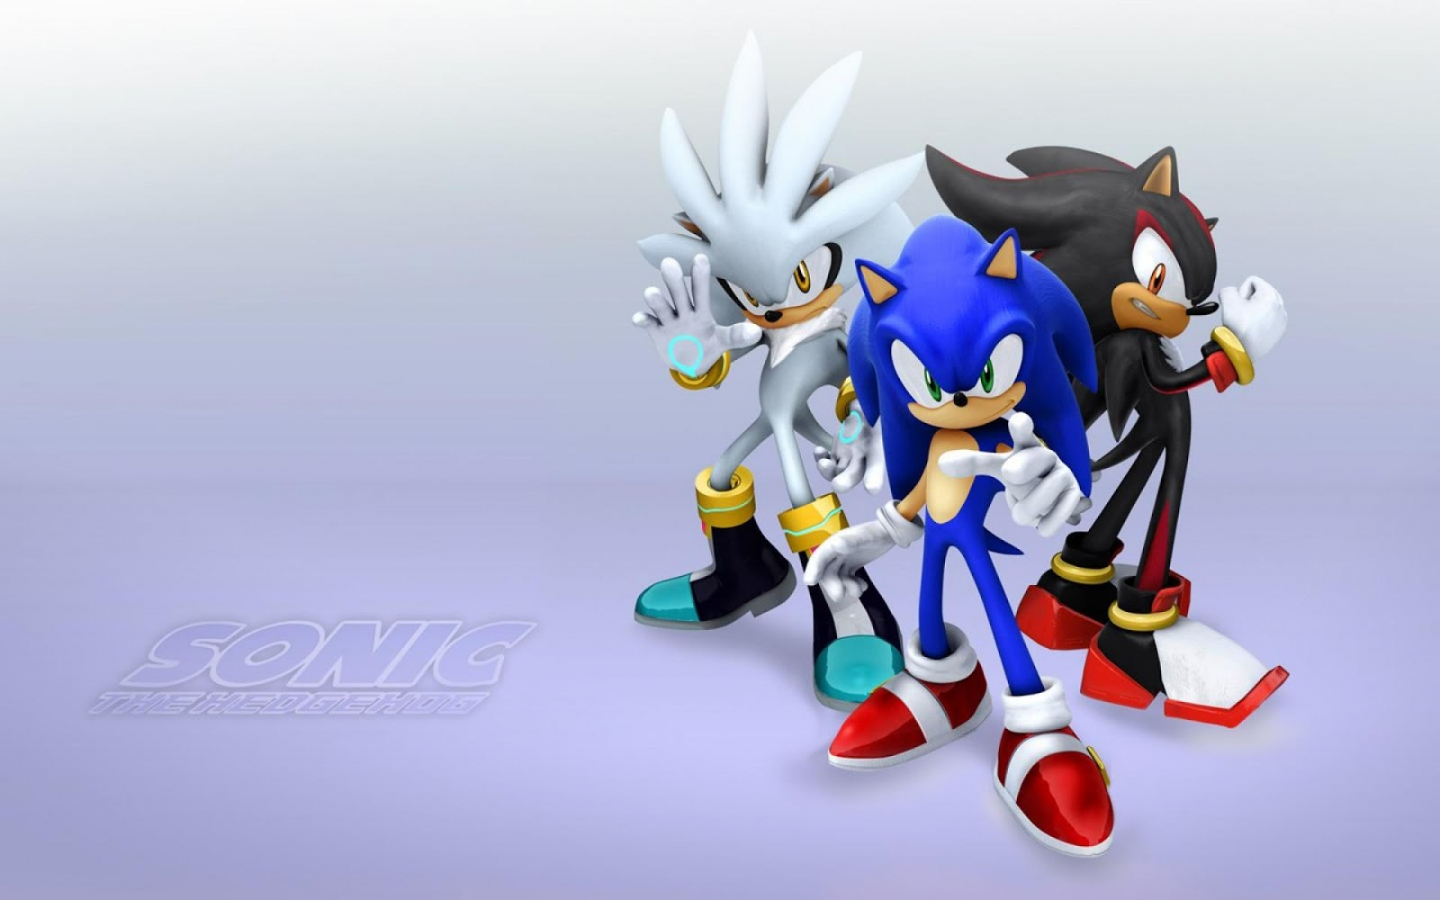 Free Download Sonic The Hedgehog Wallpaper Hd 1600x1000 For Your